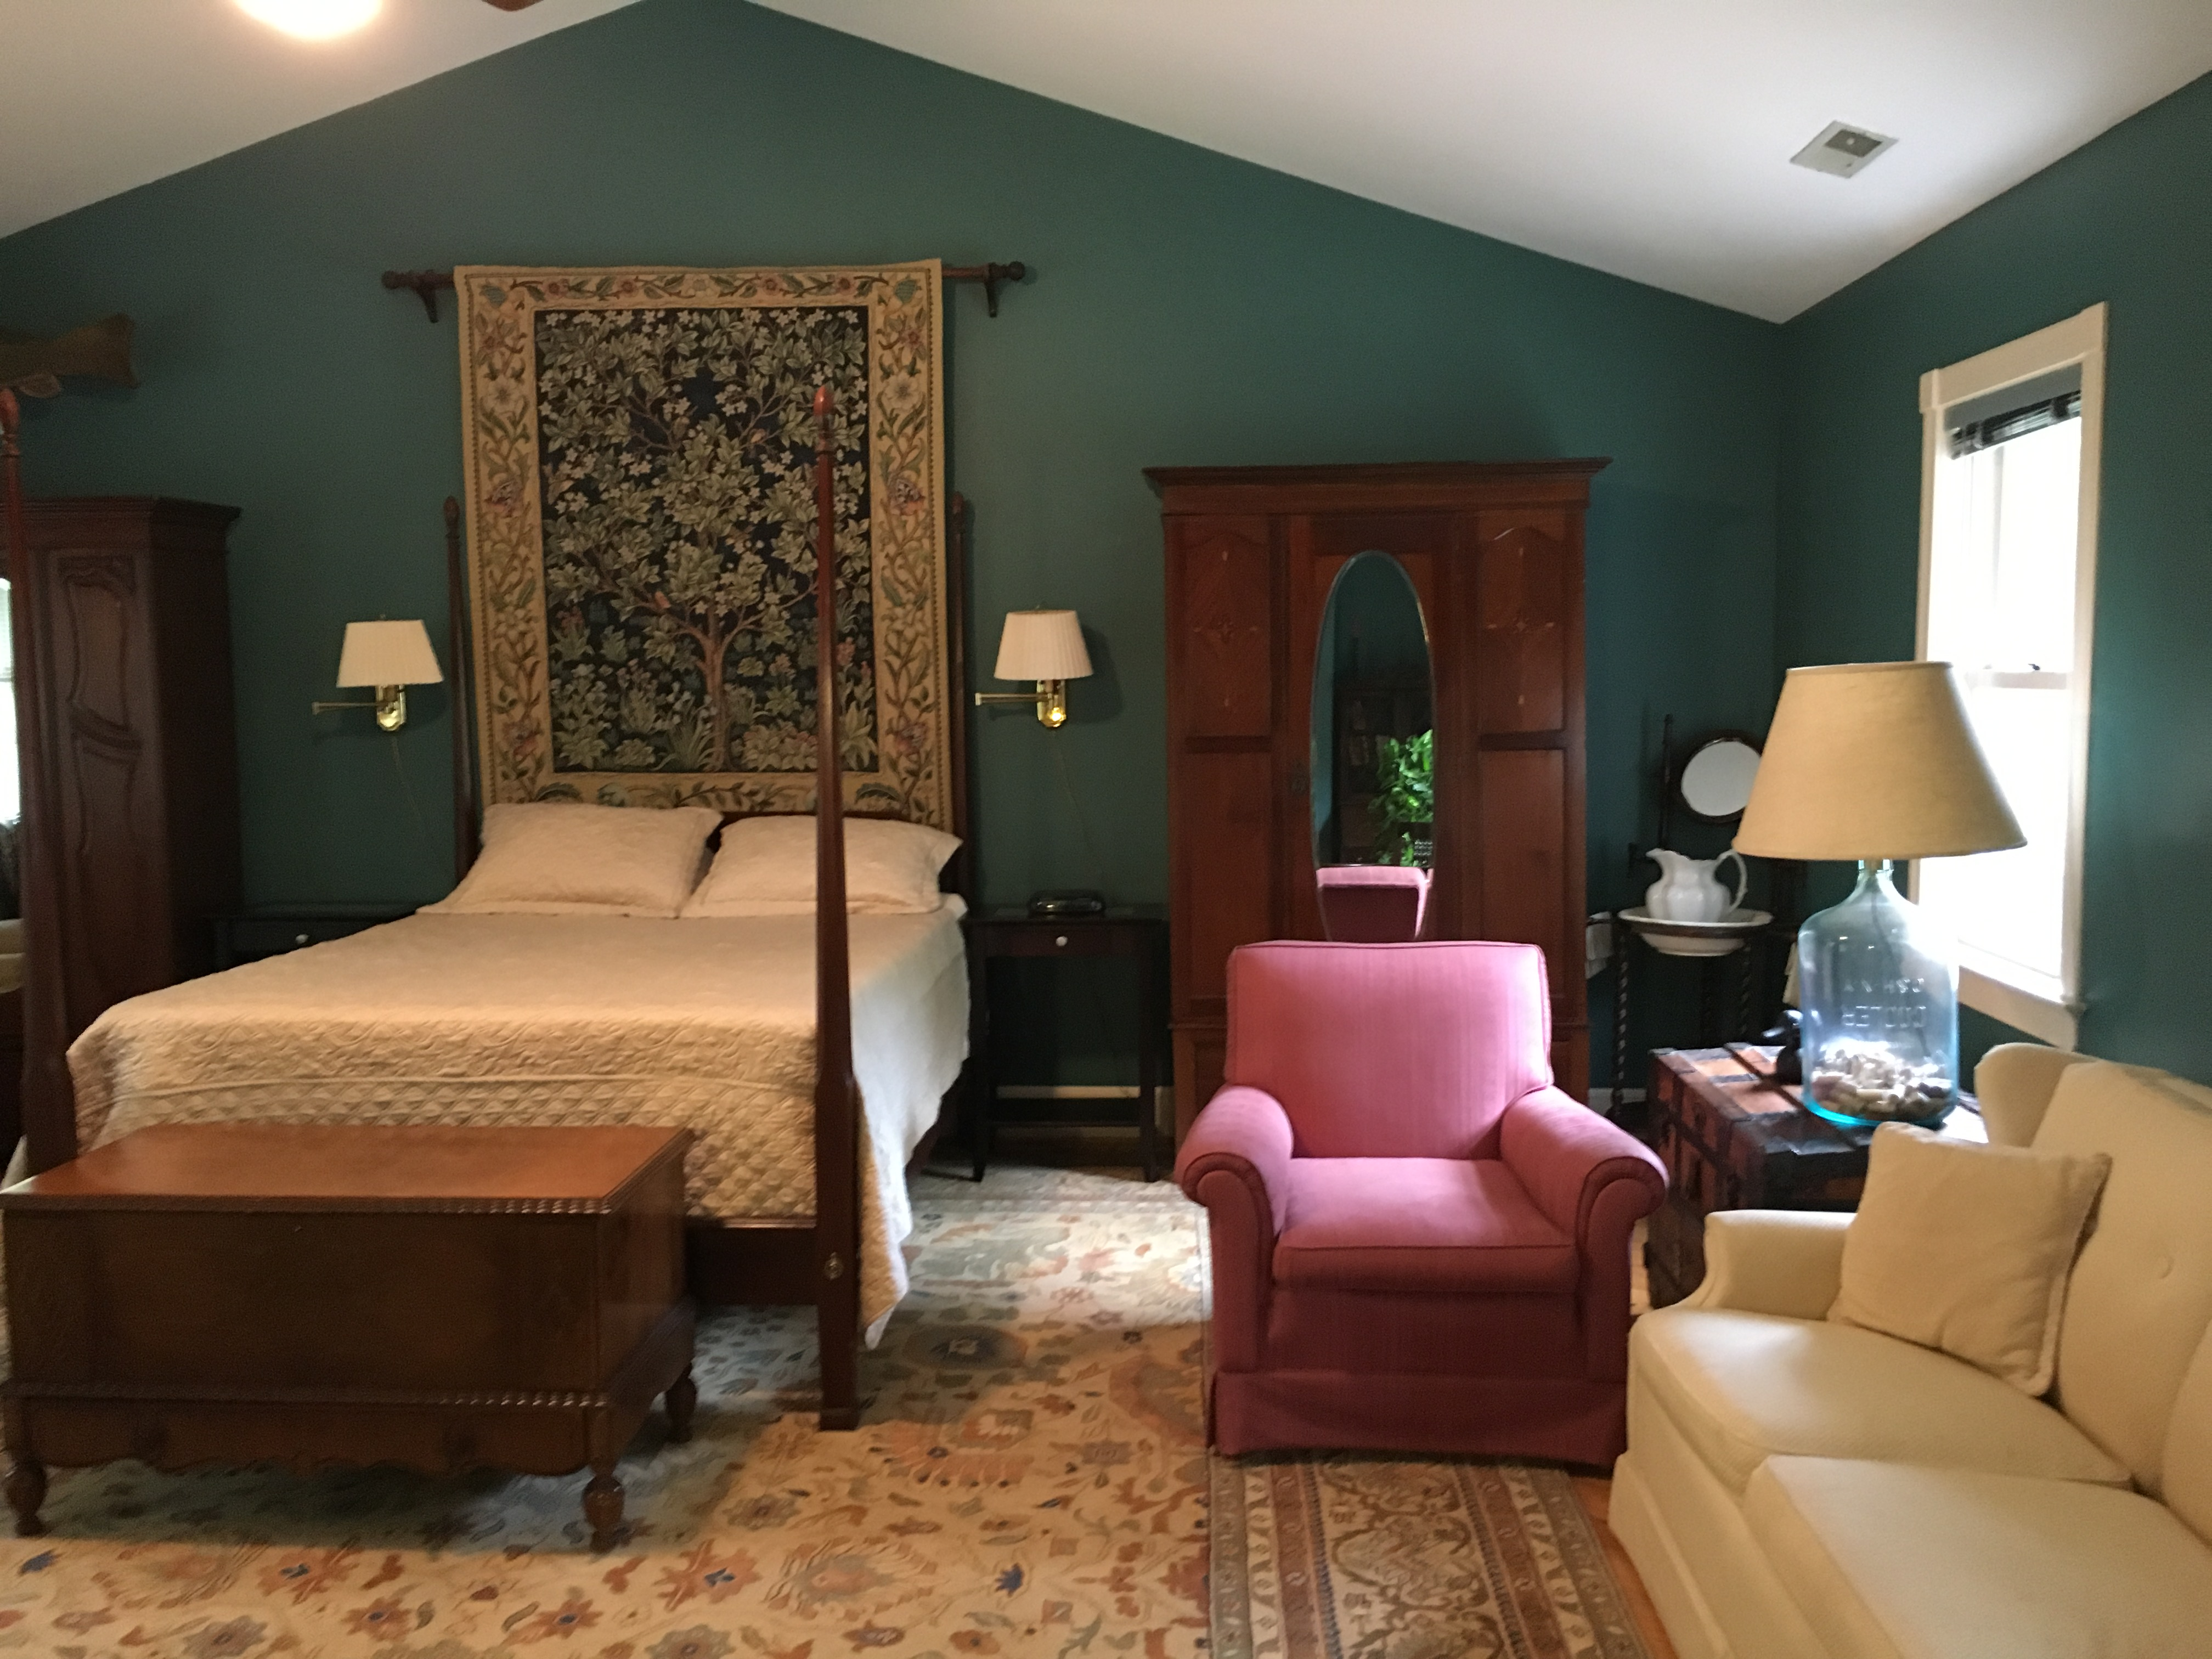 Red Fox Suite - One Bedroom Studio Extended Stays in Charlottesville